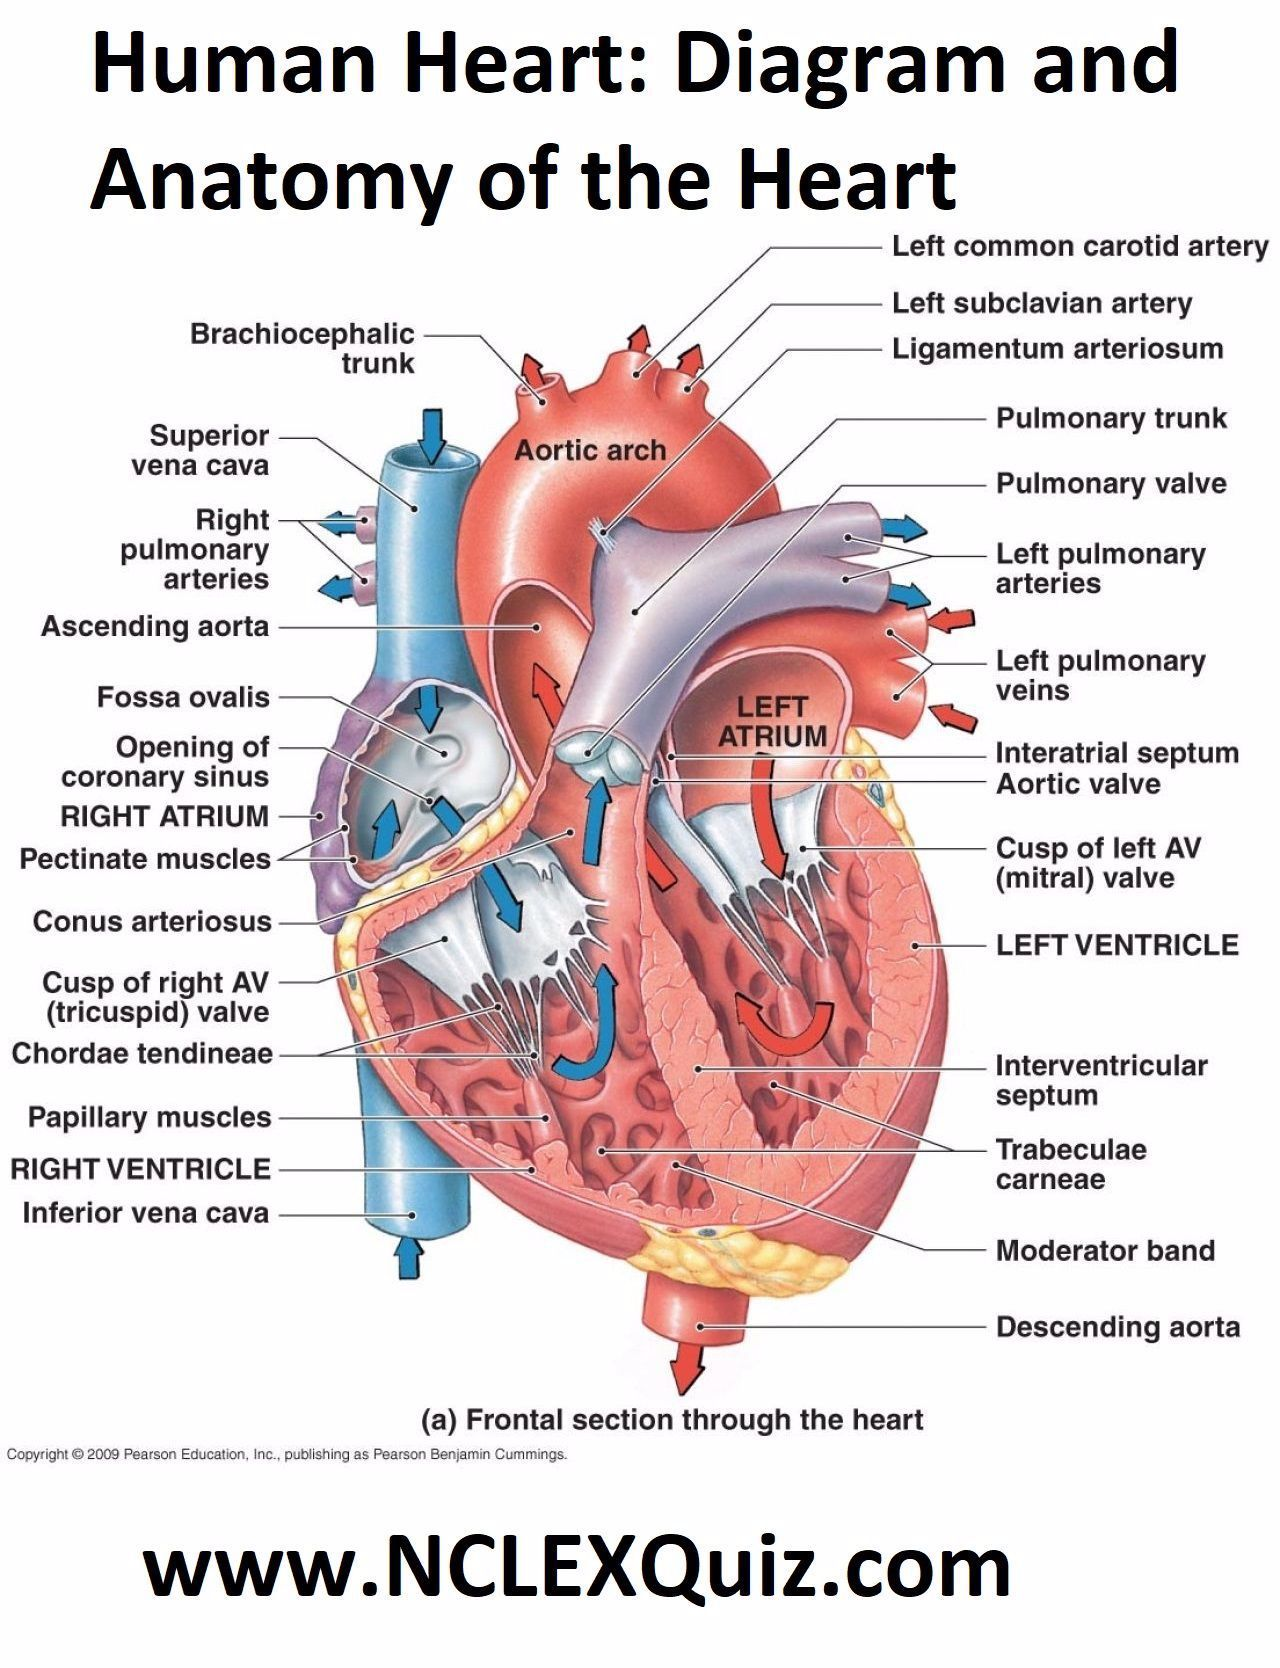 Human Heart Diagram And Anatomy Of The Heart Internal Anatomy Of The Heart Heart Diagram Right Left Atria Rig In 2020 Heart Diagram Human Heart Human Heart Diagram